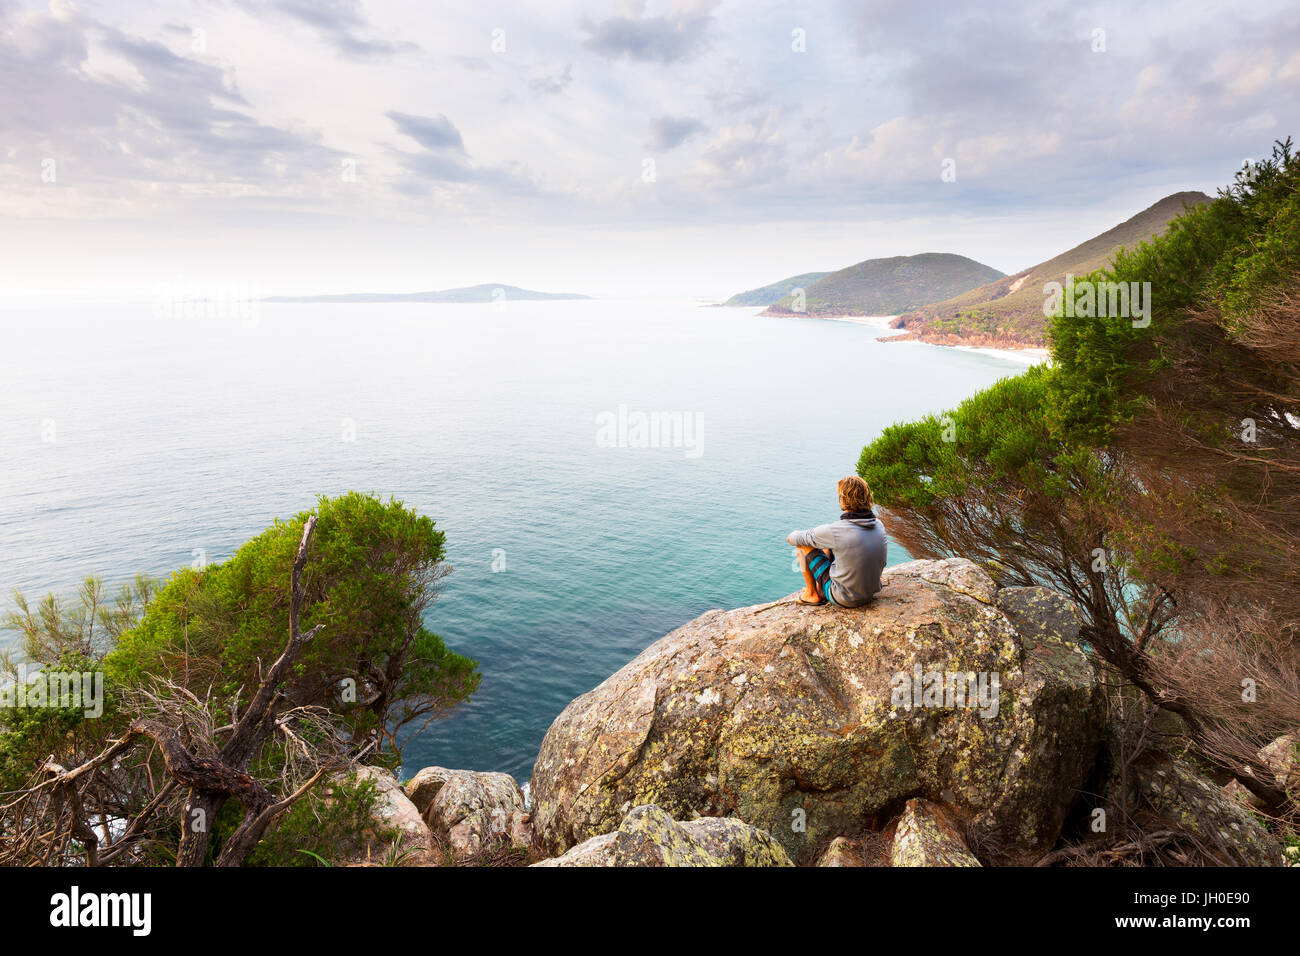 A man sits on a boulder overlooking a panoramic view of a beautiful ocean coastline near Newcastle, Australia. Stock Photo